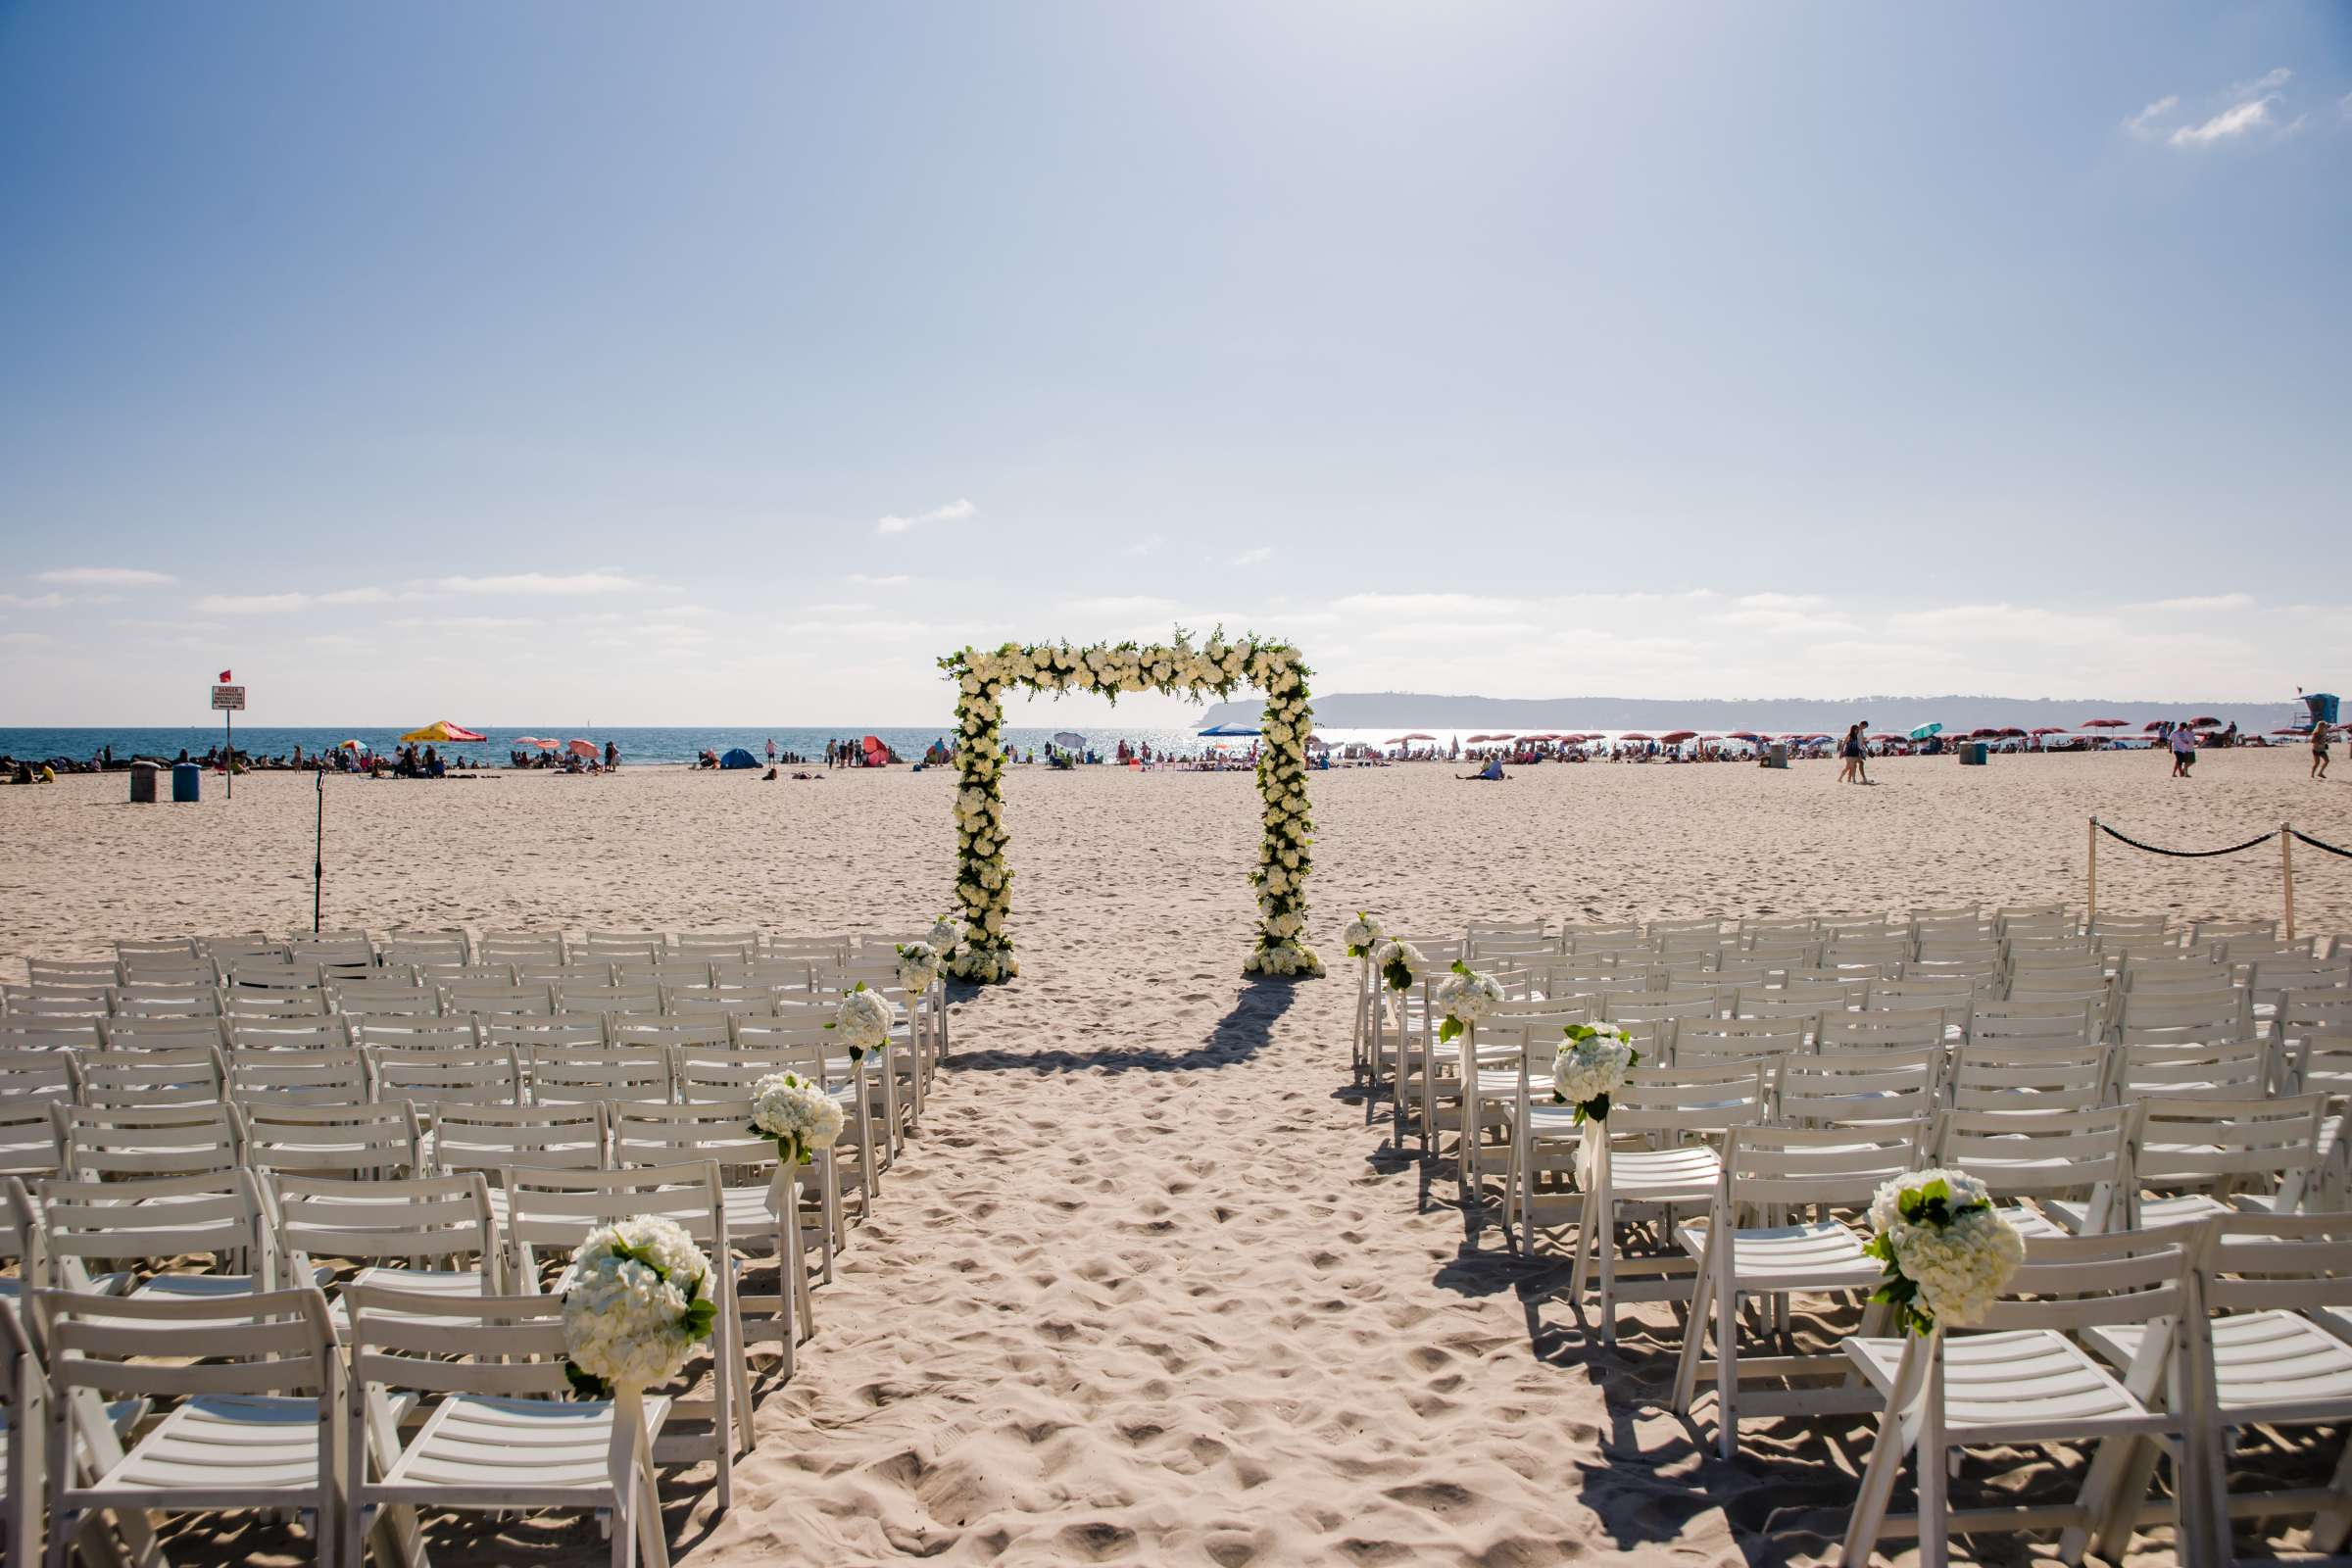 Hotel Del Coronado Wedding coordinated by Creative Affairs Inc, Diane and Paul Wedding Photo #53 by True Photography